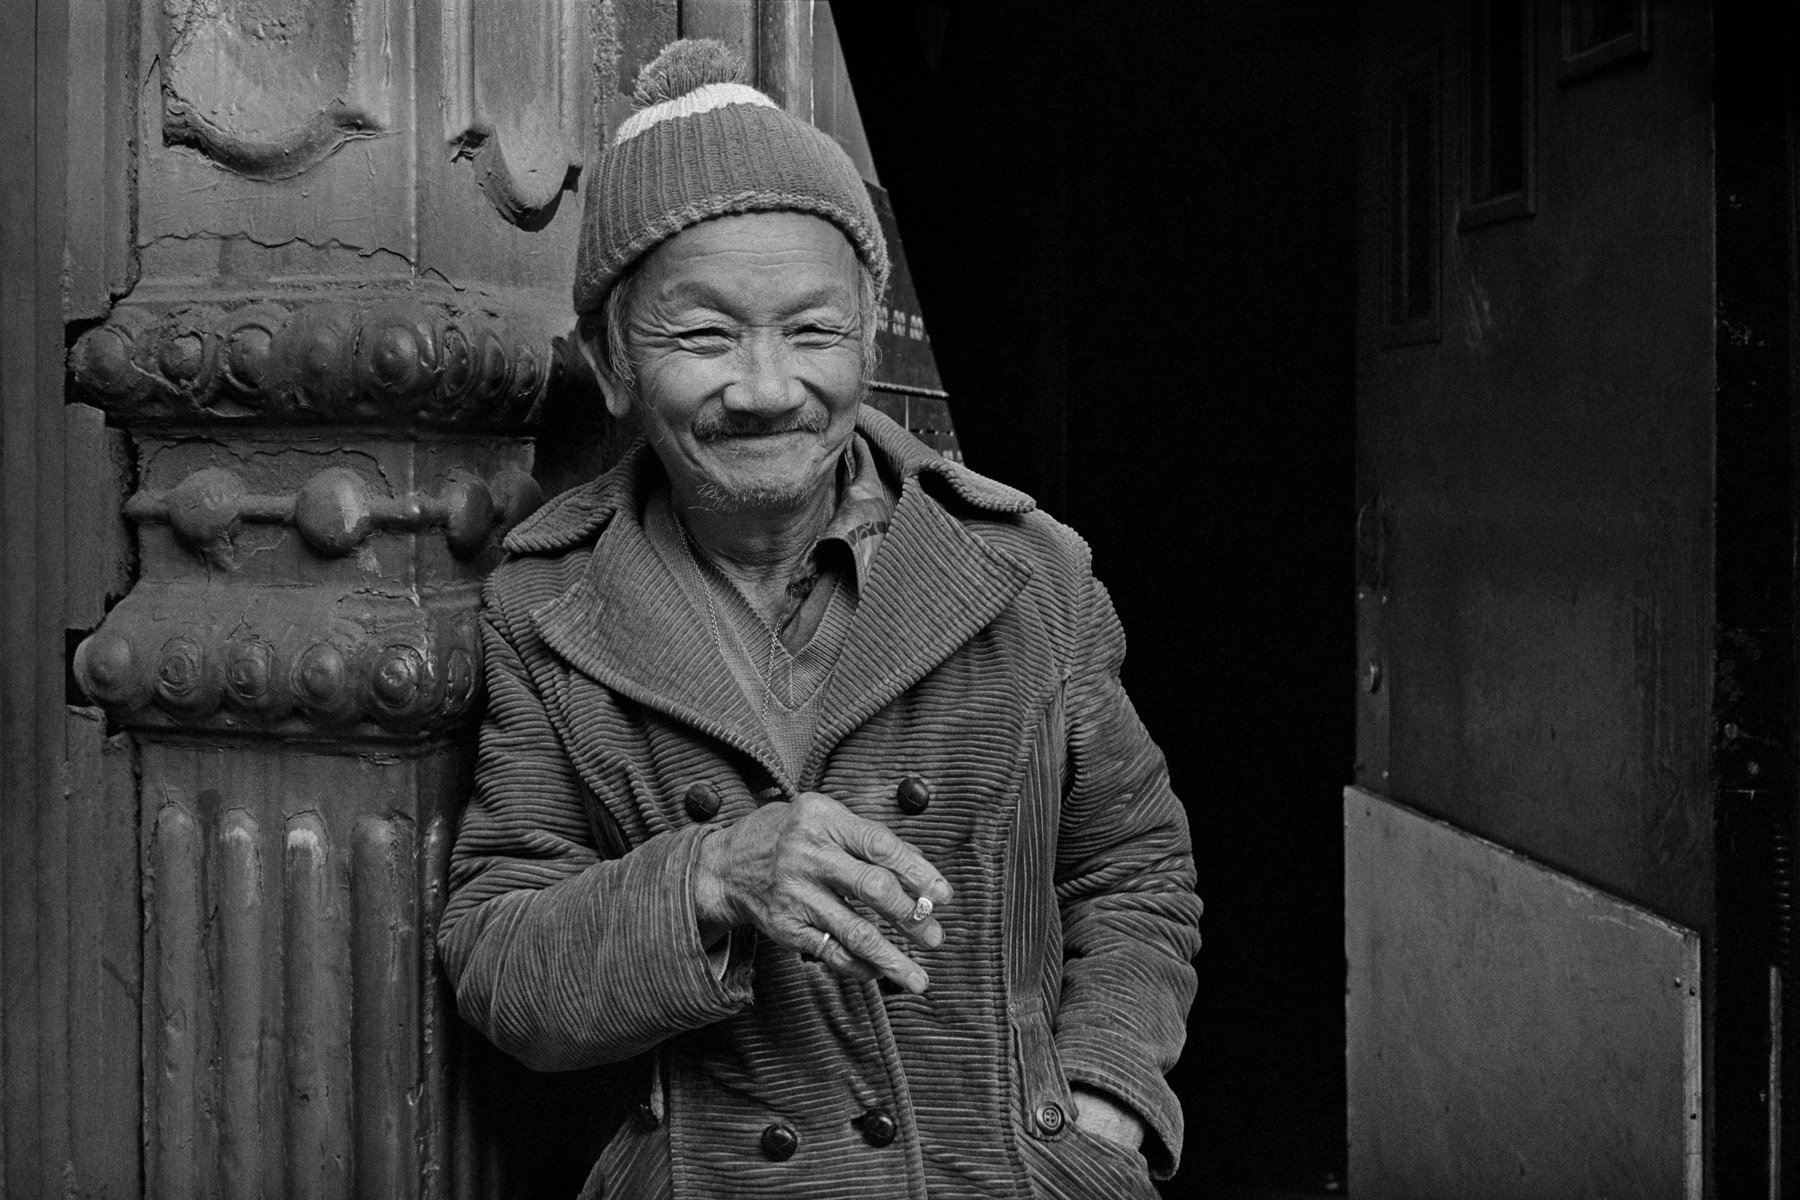 Mr. Soo, East Broadway, New York Chinatown,1982.